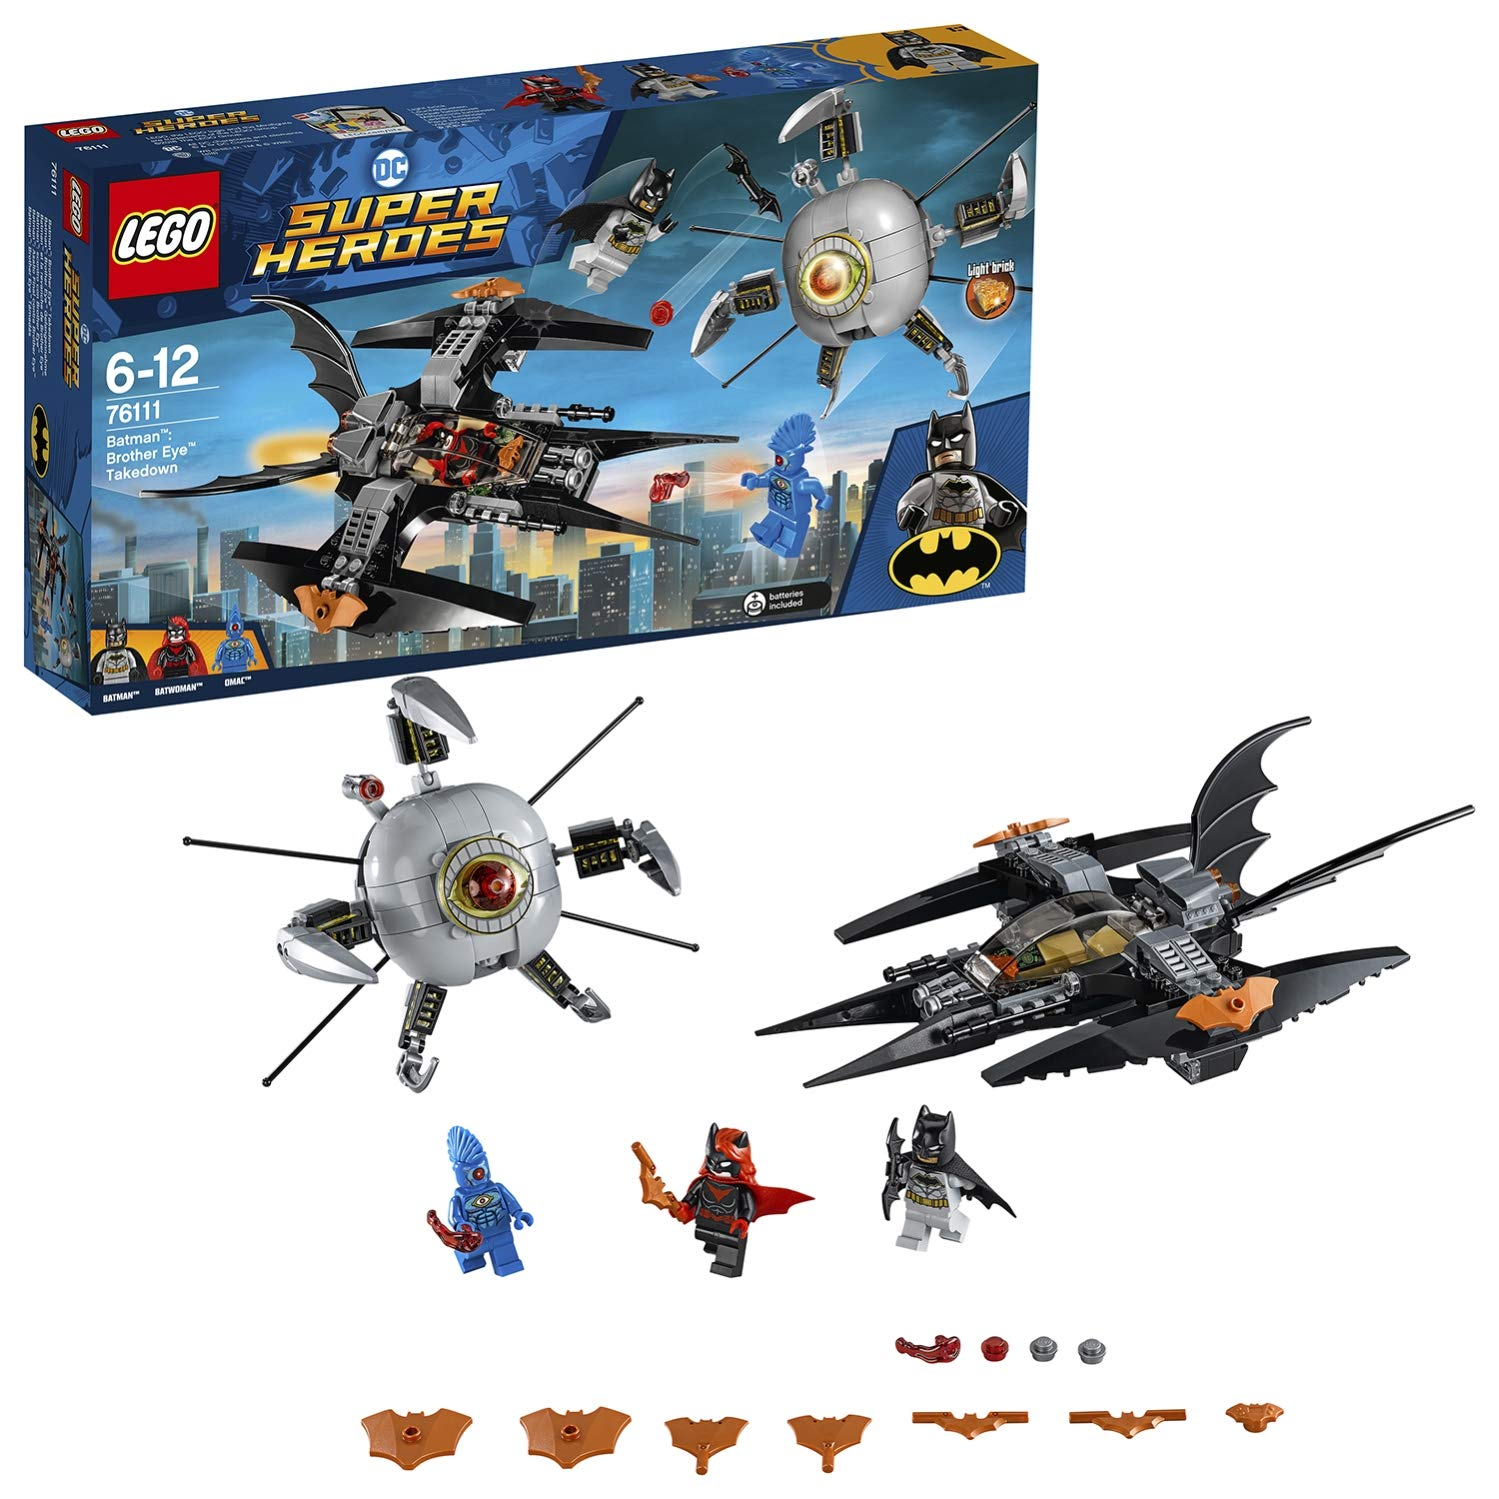 Amazon.com: LEGO 76111 Brother Eye Takedown Super Heroes ...